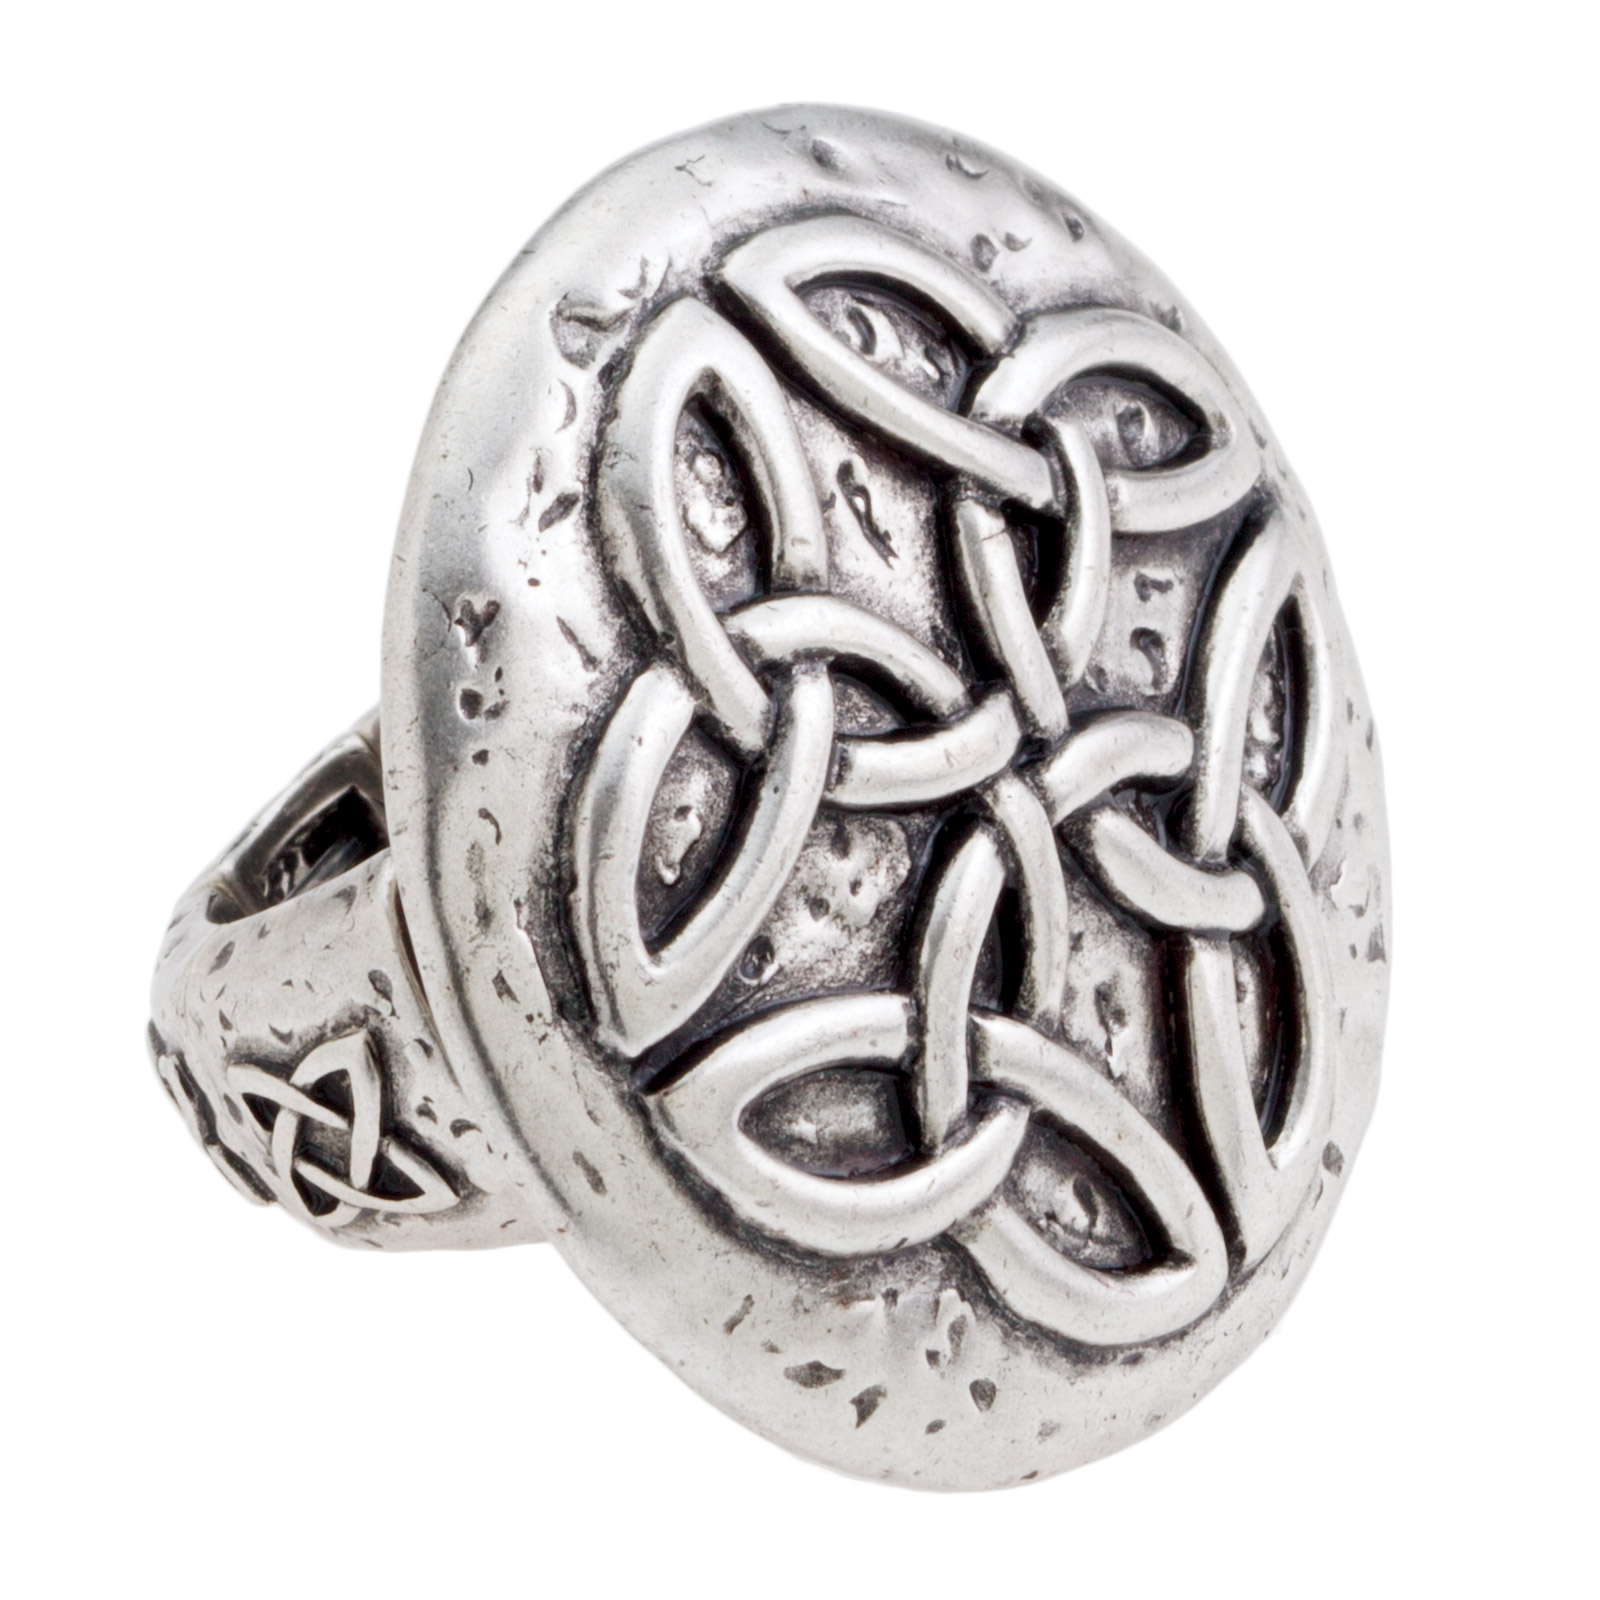 Avalon Silver Ring Your Price 2000 This Captivating Ring Is